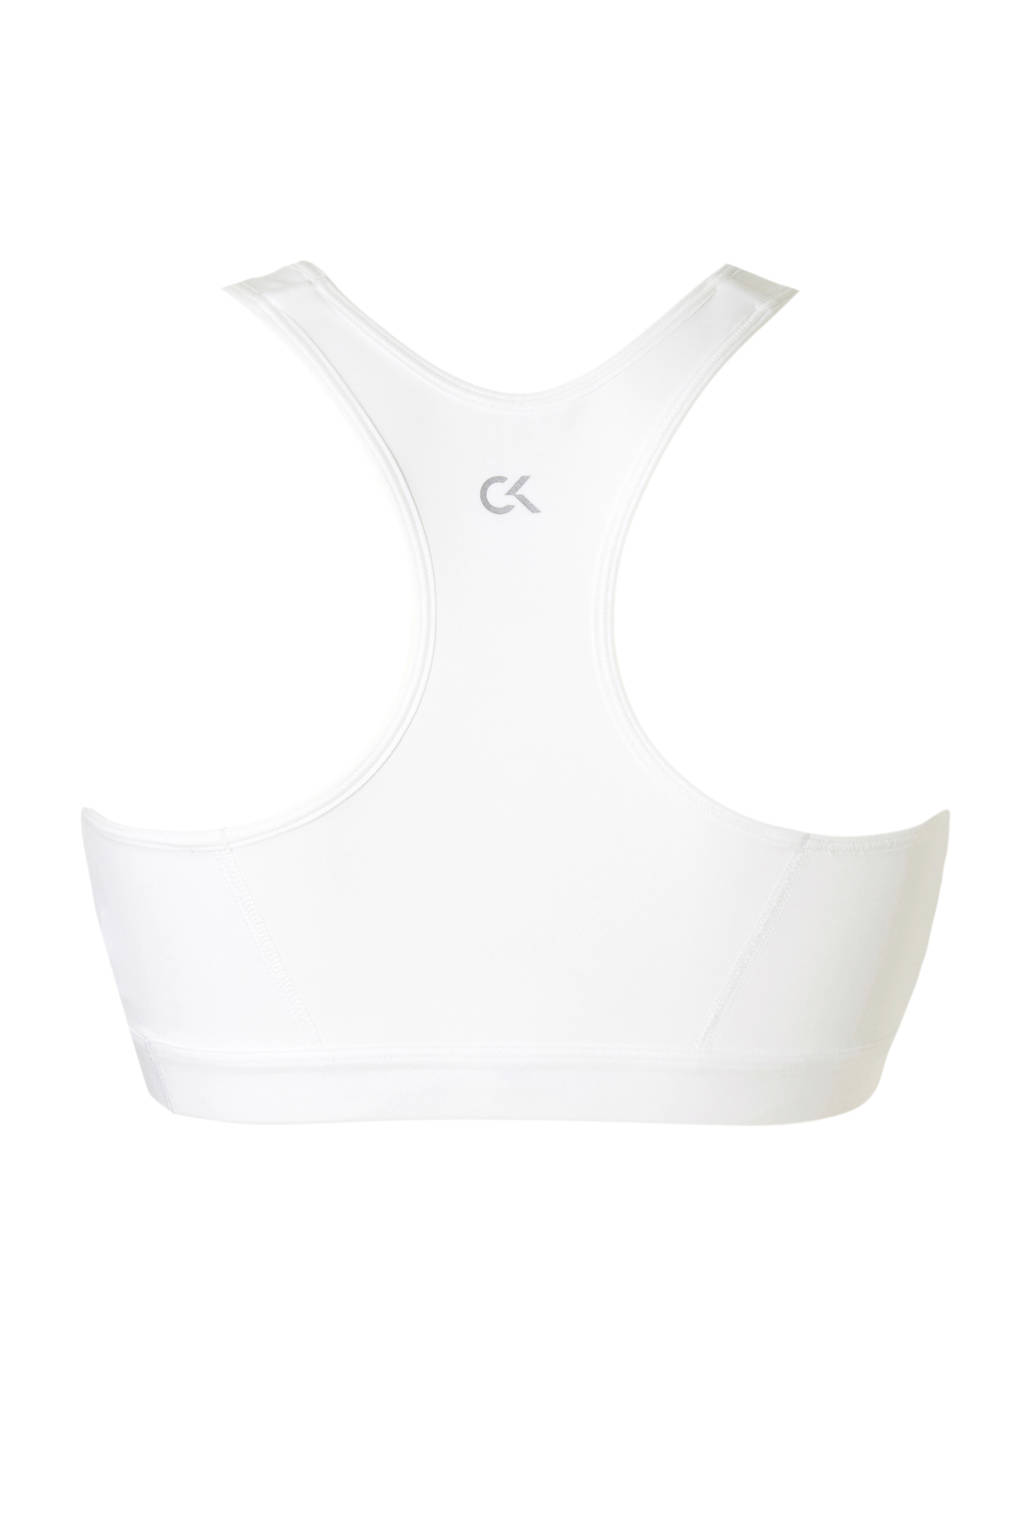 Calvin Klein Performance Level 1 sportbh wit, Wit